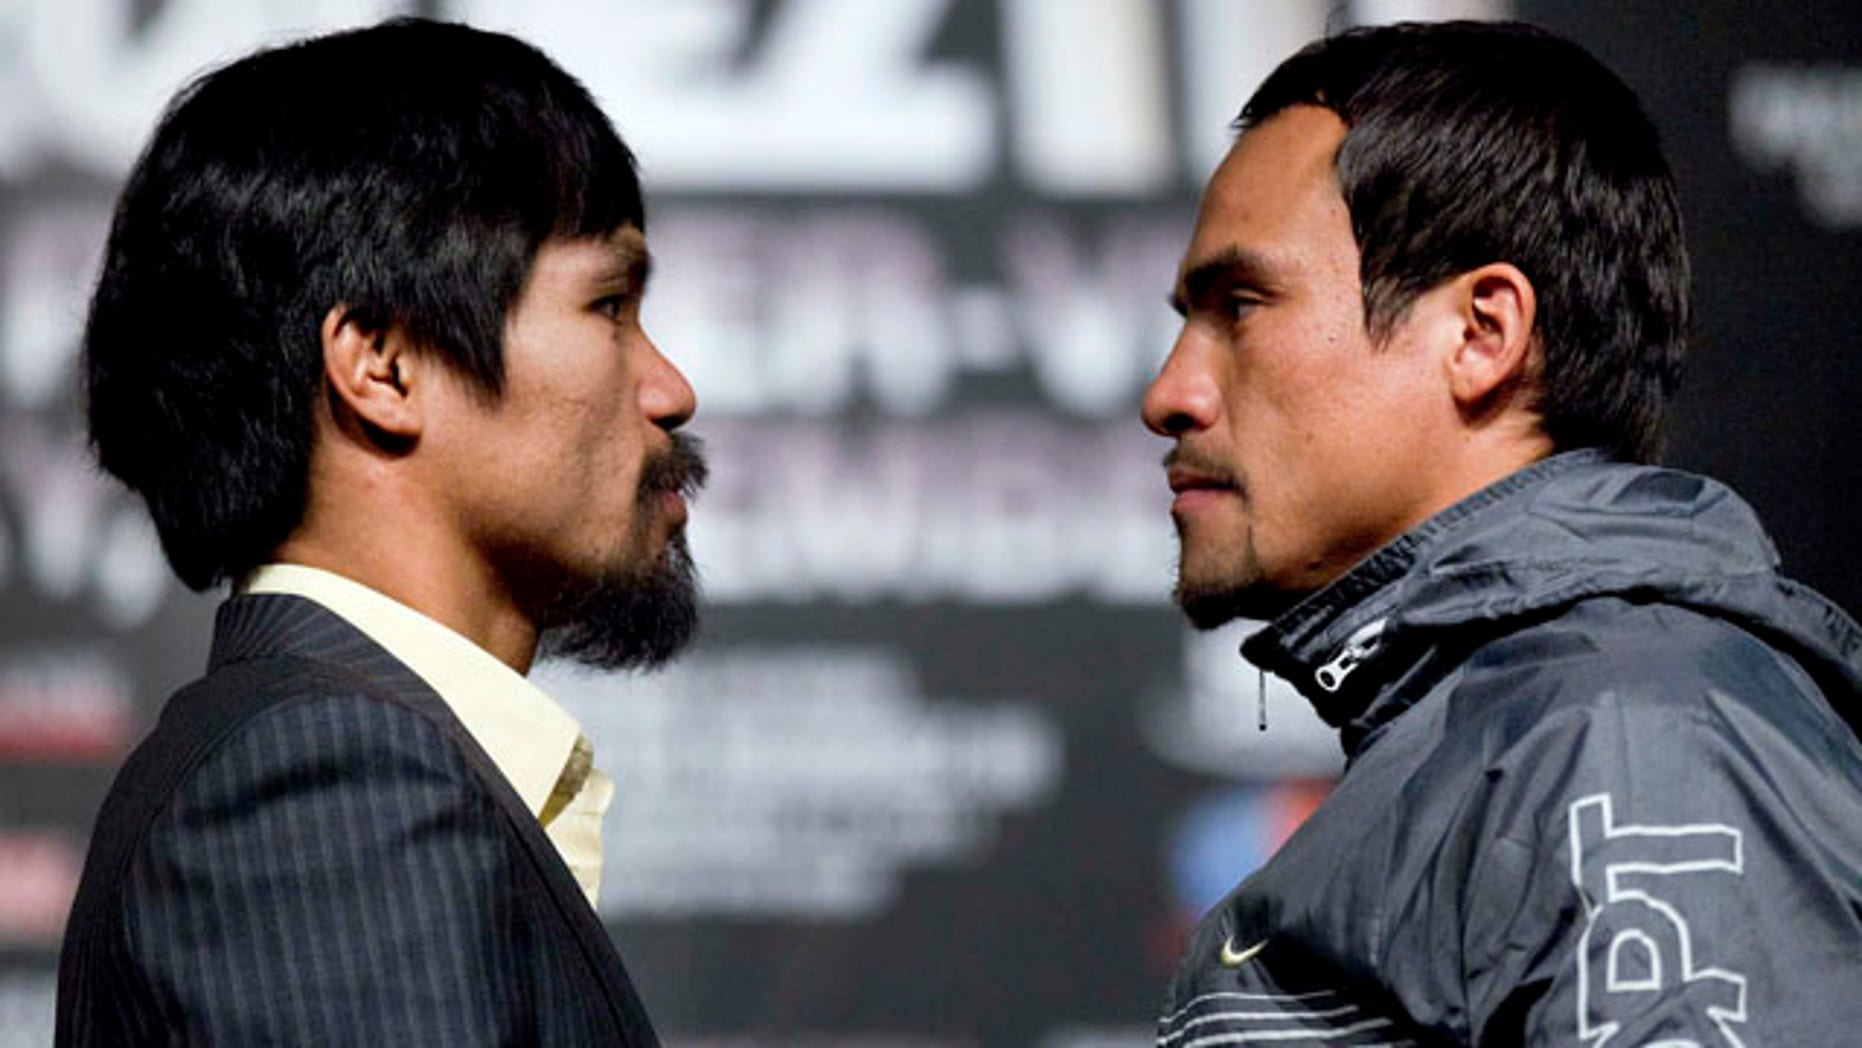 Manny Pacquiao, left, poses for photos with Juan Manuel Marquez during a news conference, Wednesday, Nov. 9, 2011, in Las Vegas. Pacquiao and Marquez will battle for the WBO welterweight championship on Saturday. (AP Photo/Julie Jacobson)